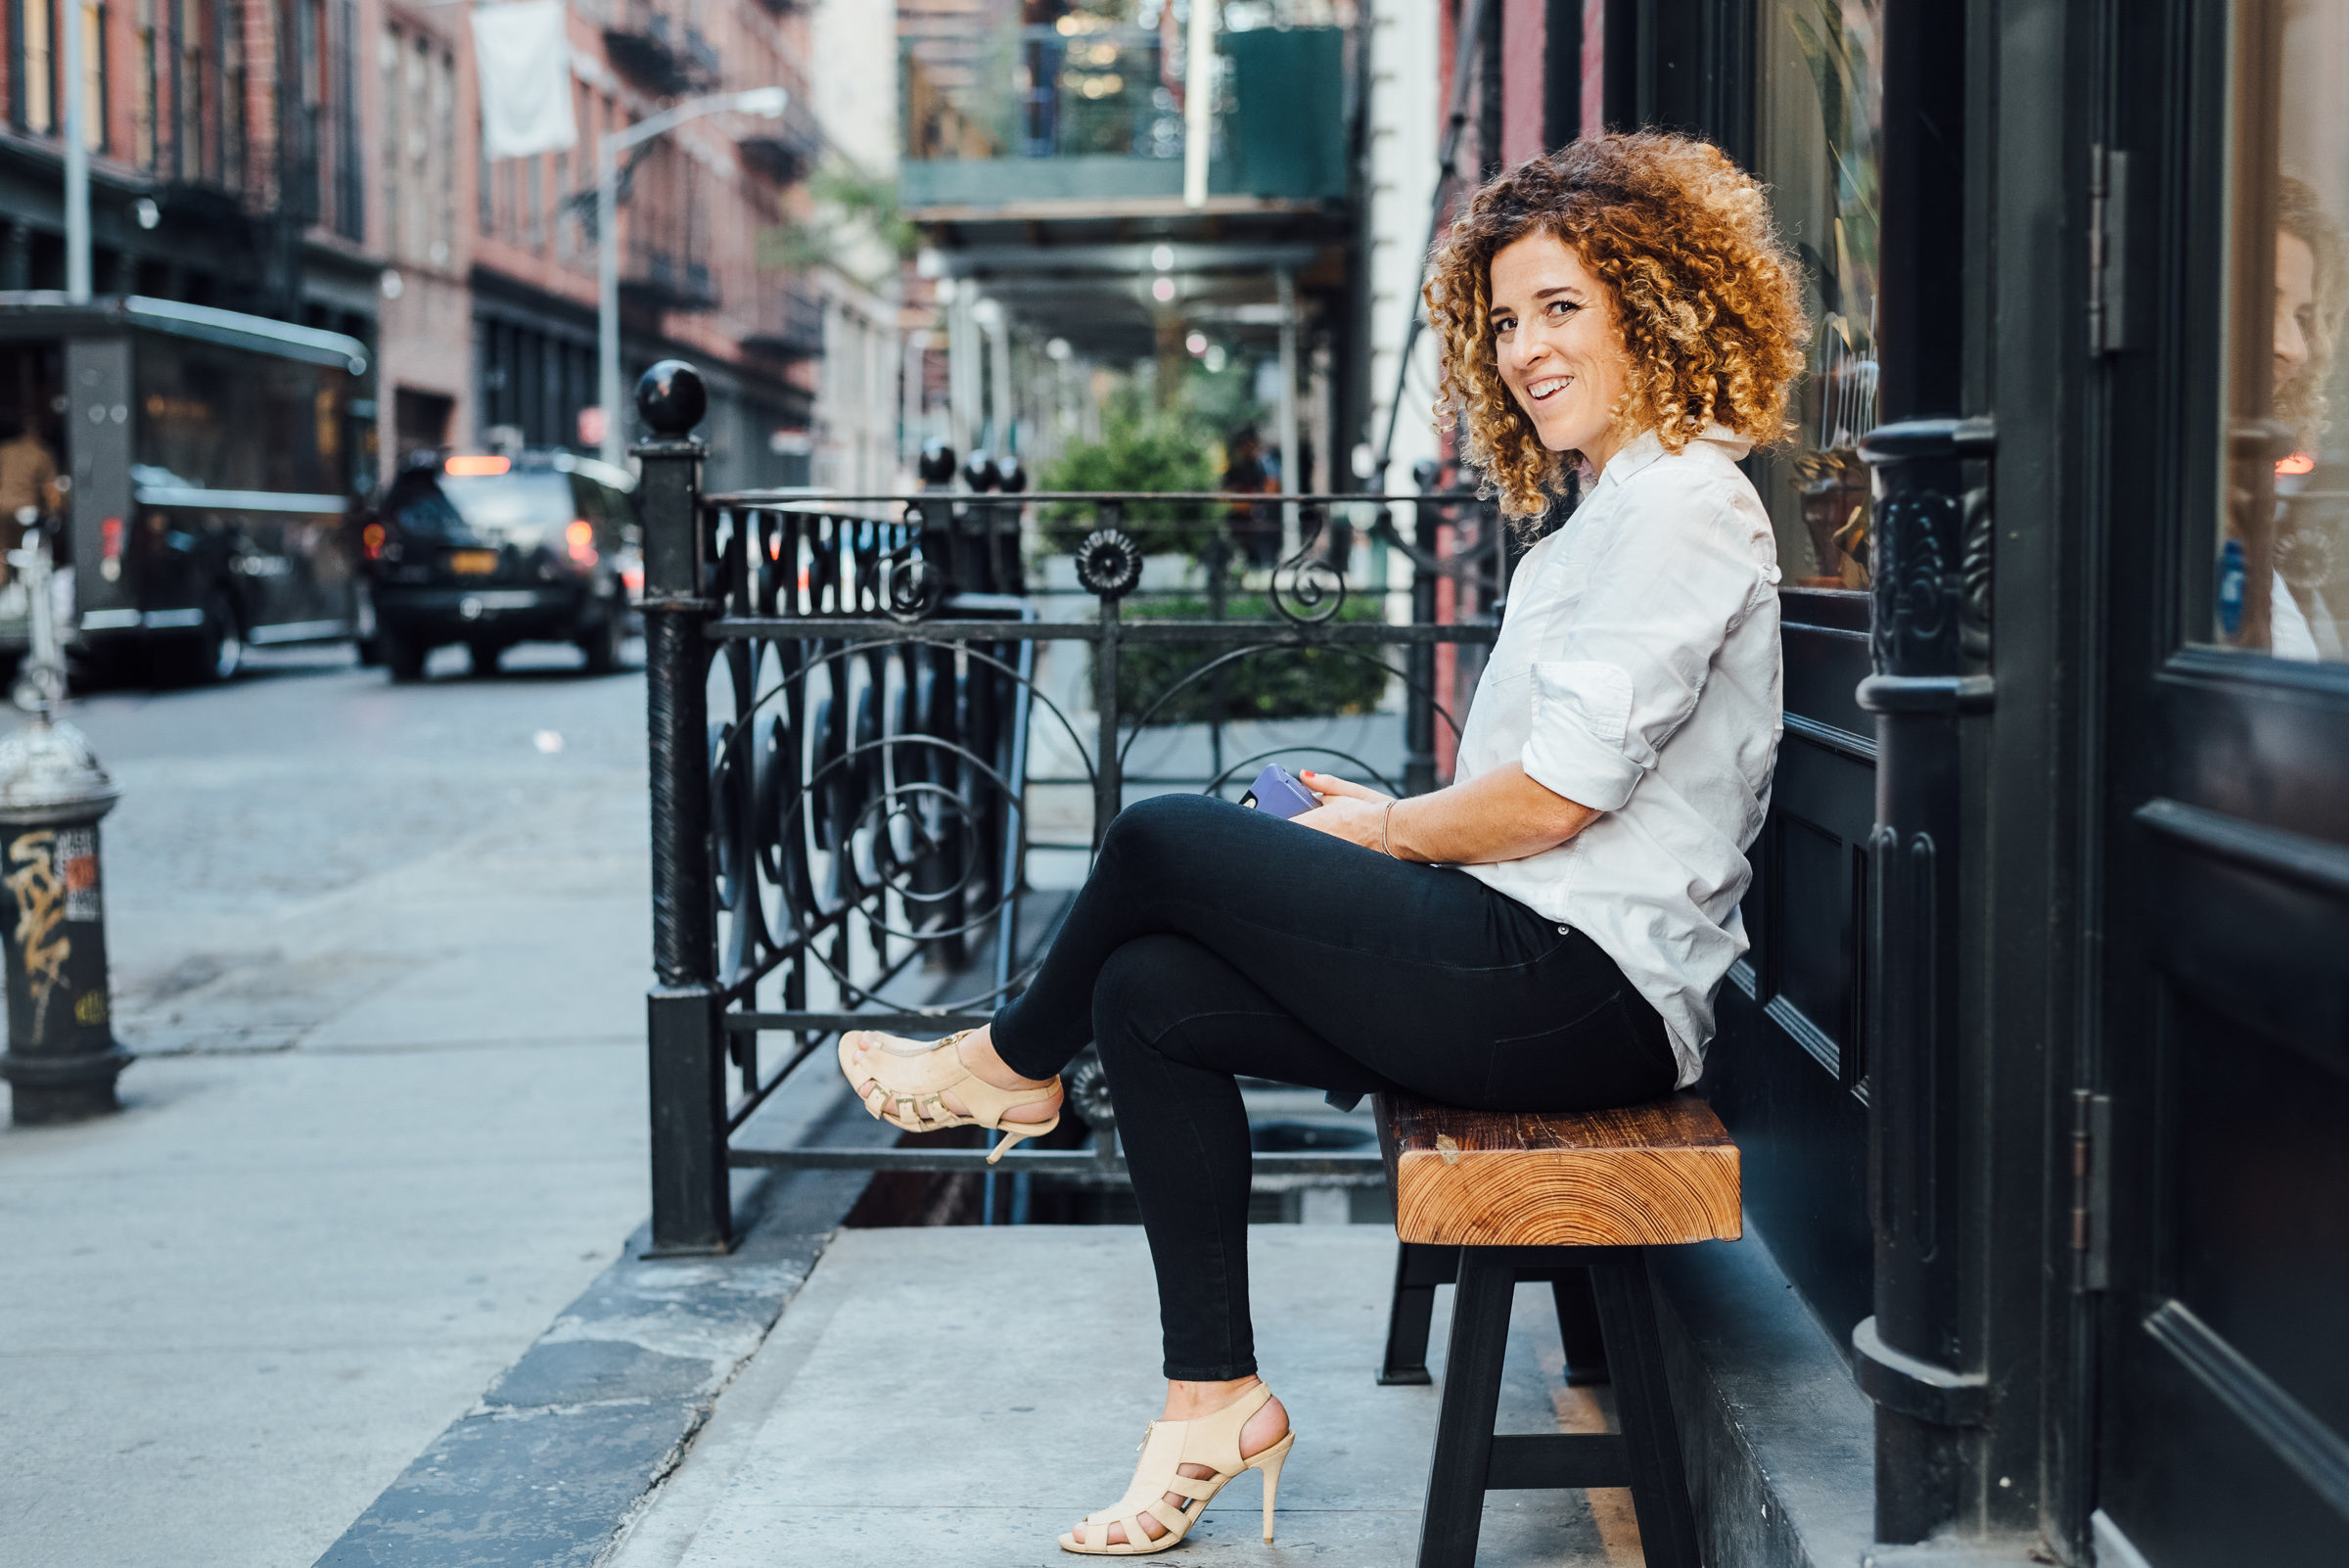 Sarah Doody, UX Portfolio Founder, sitting on a bench in New York City.